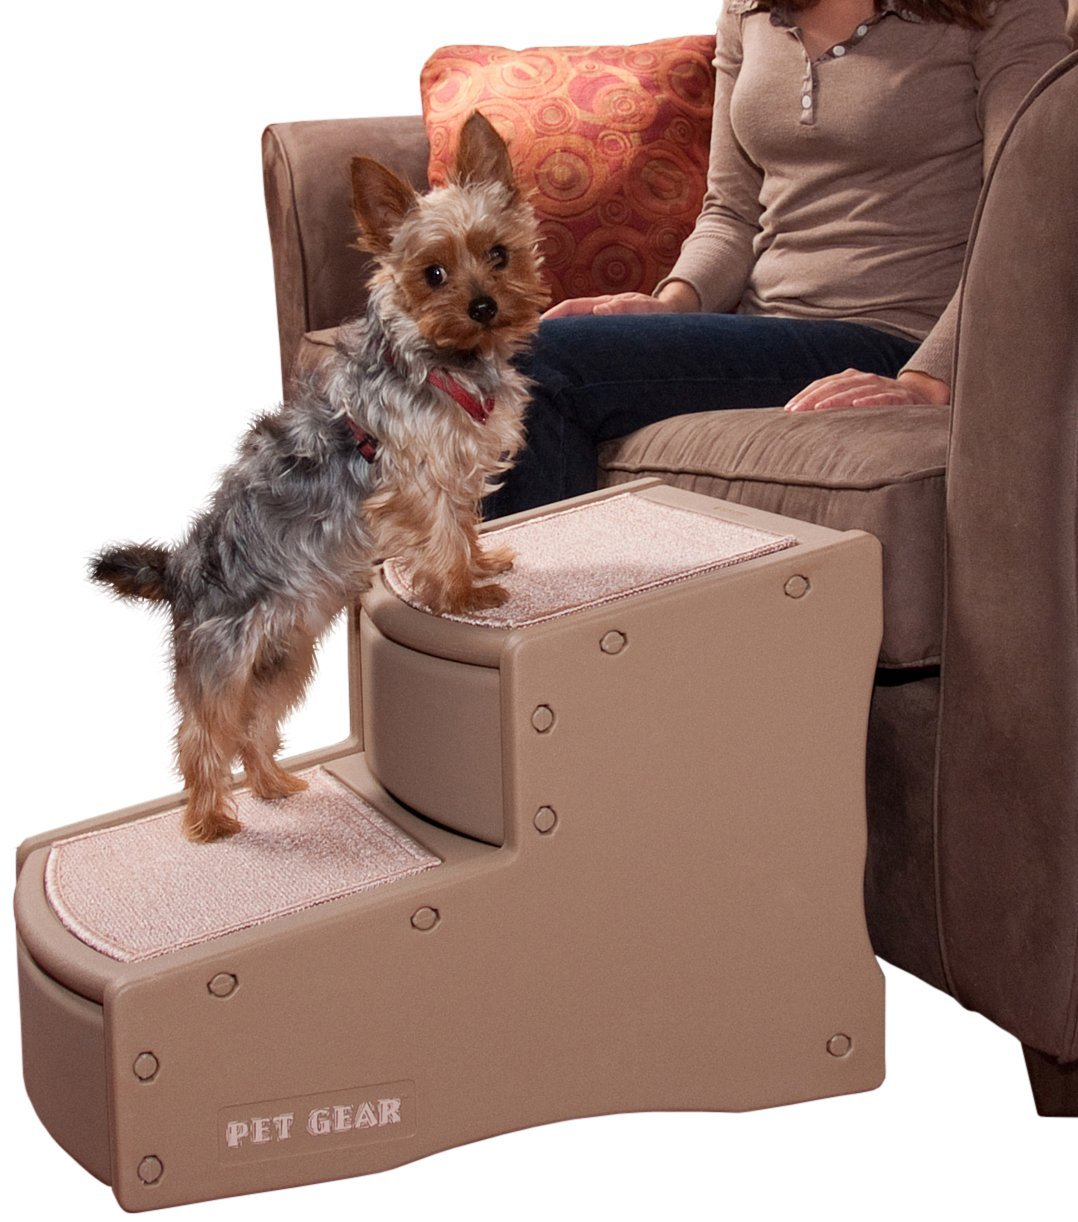 Escalera Para Perros Y Gatos Hasta 68 Kg, Pet Gear